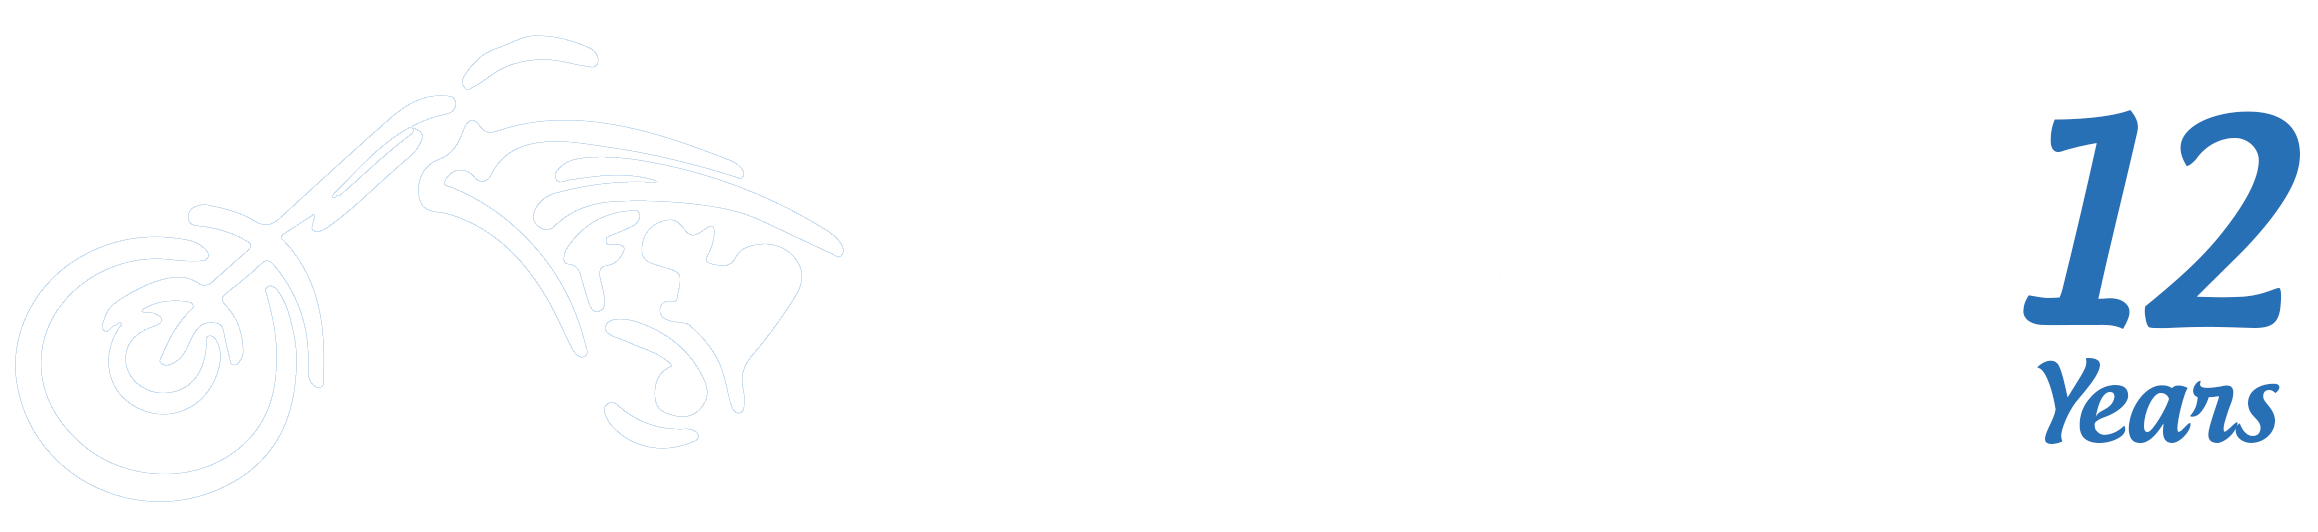 Romania Motorcycle Tours Logo